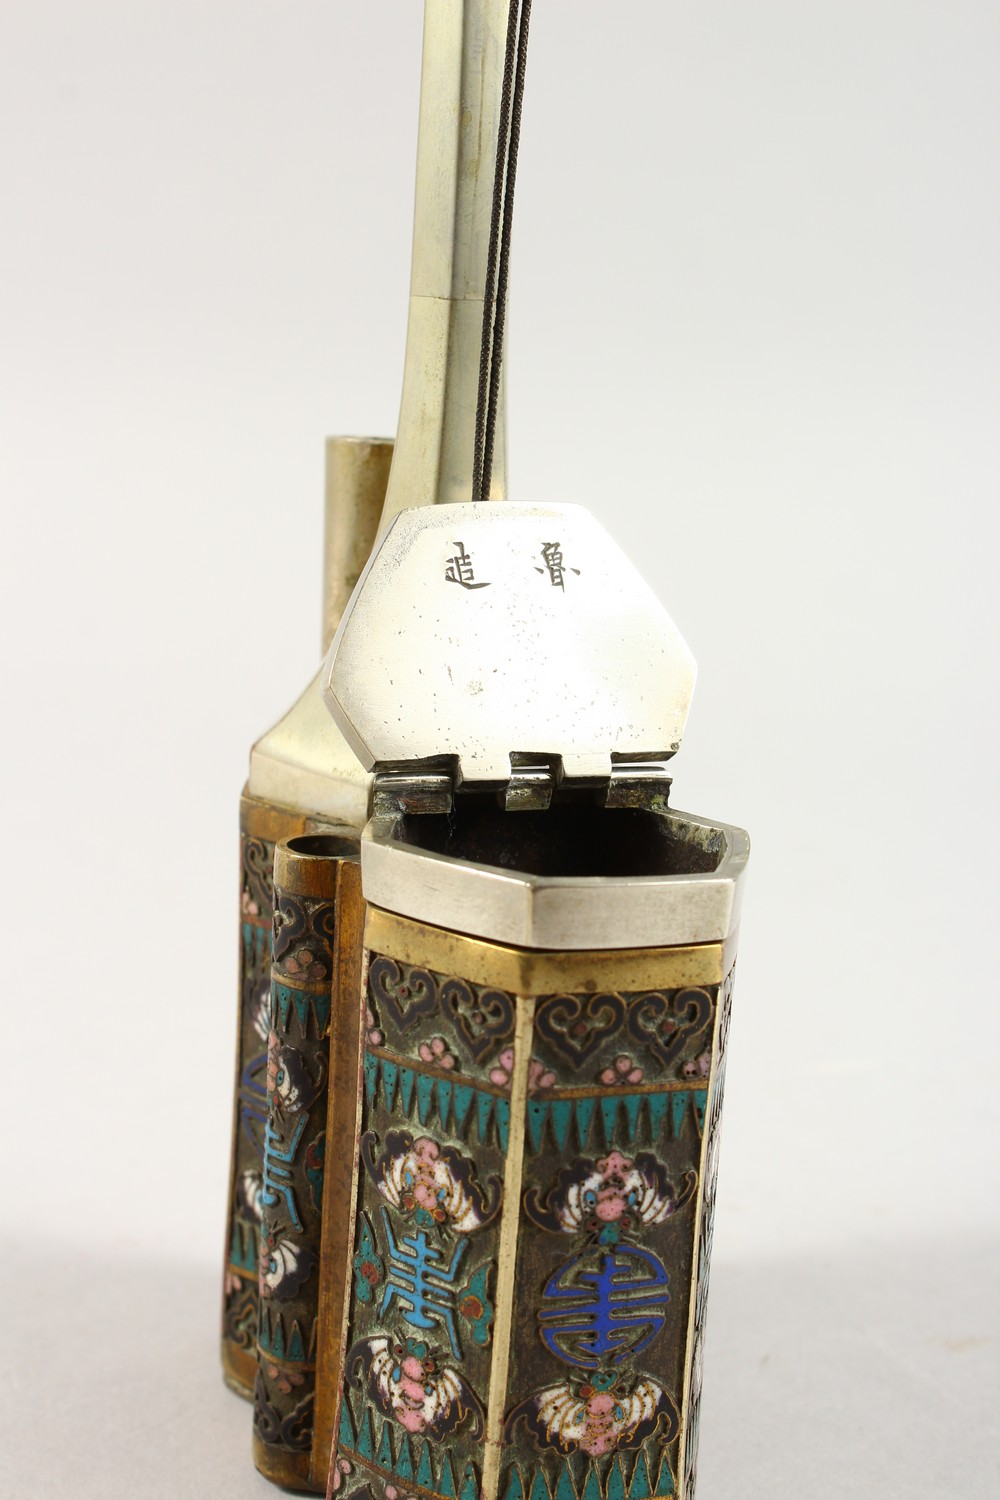 A GOOD 19TH / 20TH CENTURY CHINESE CLOISOINNE SMOKING PIPE, the side with decoration depicting - Image 8 of 9